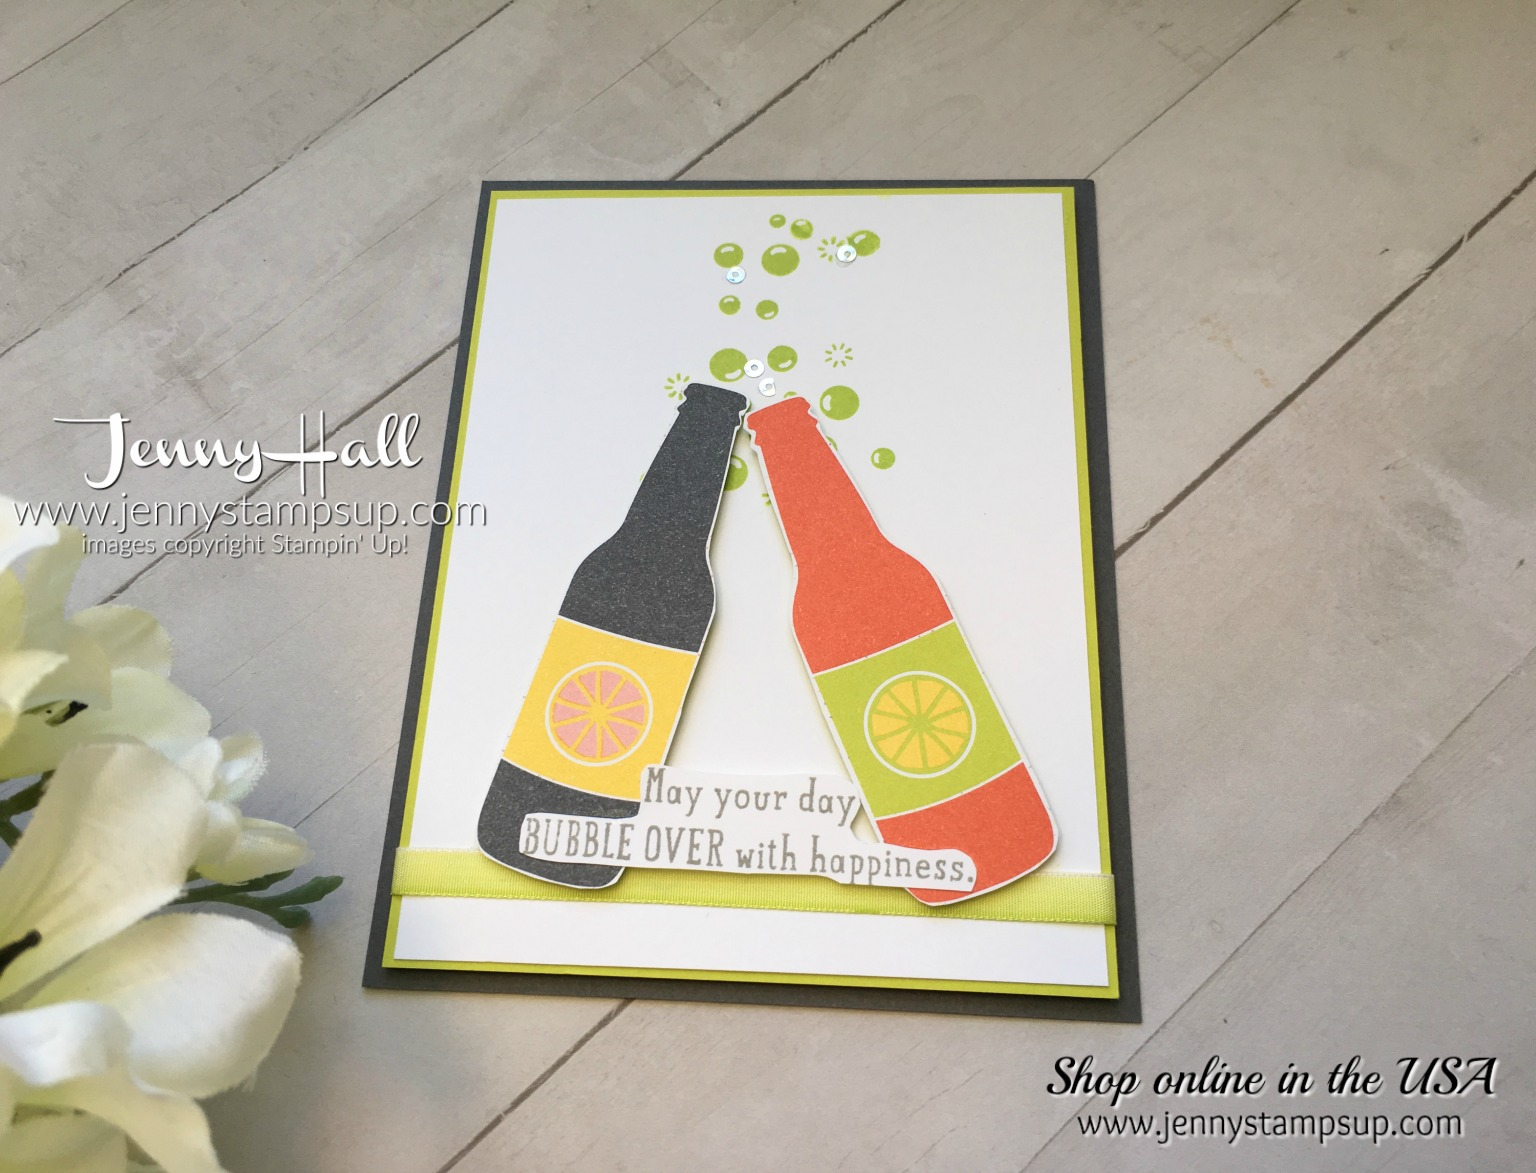 Bubble Over card by Jenny Hall at www.jennystampsup.com for scrapbooking, cardmaking, video tutorials and more!